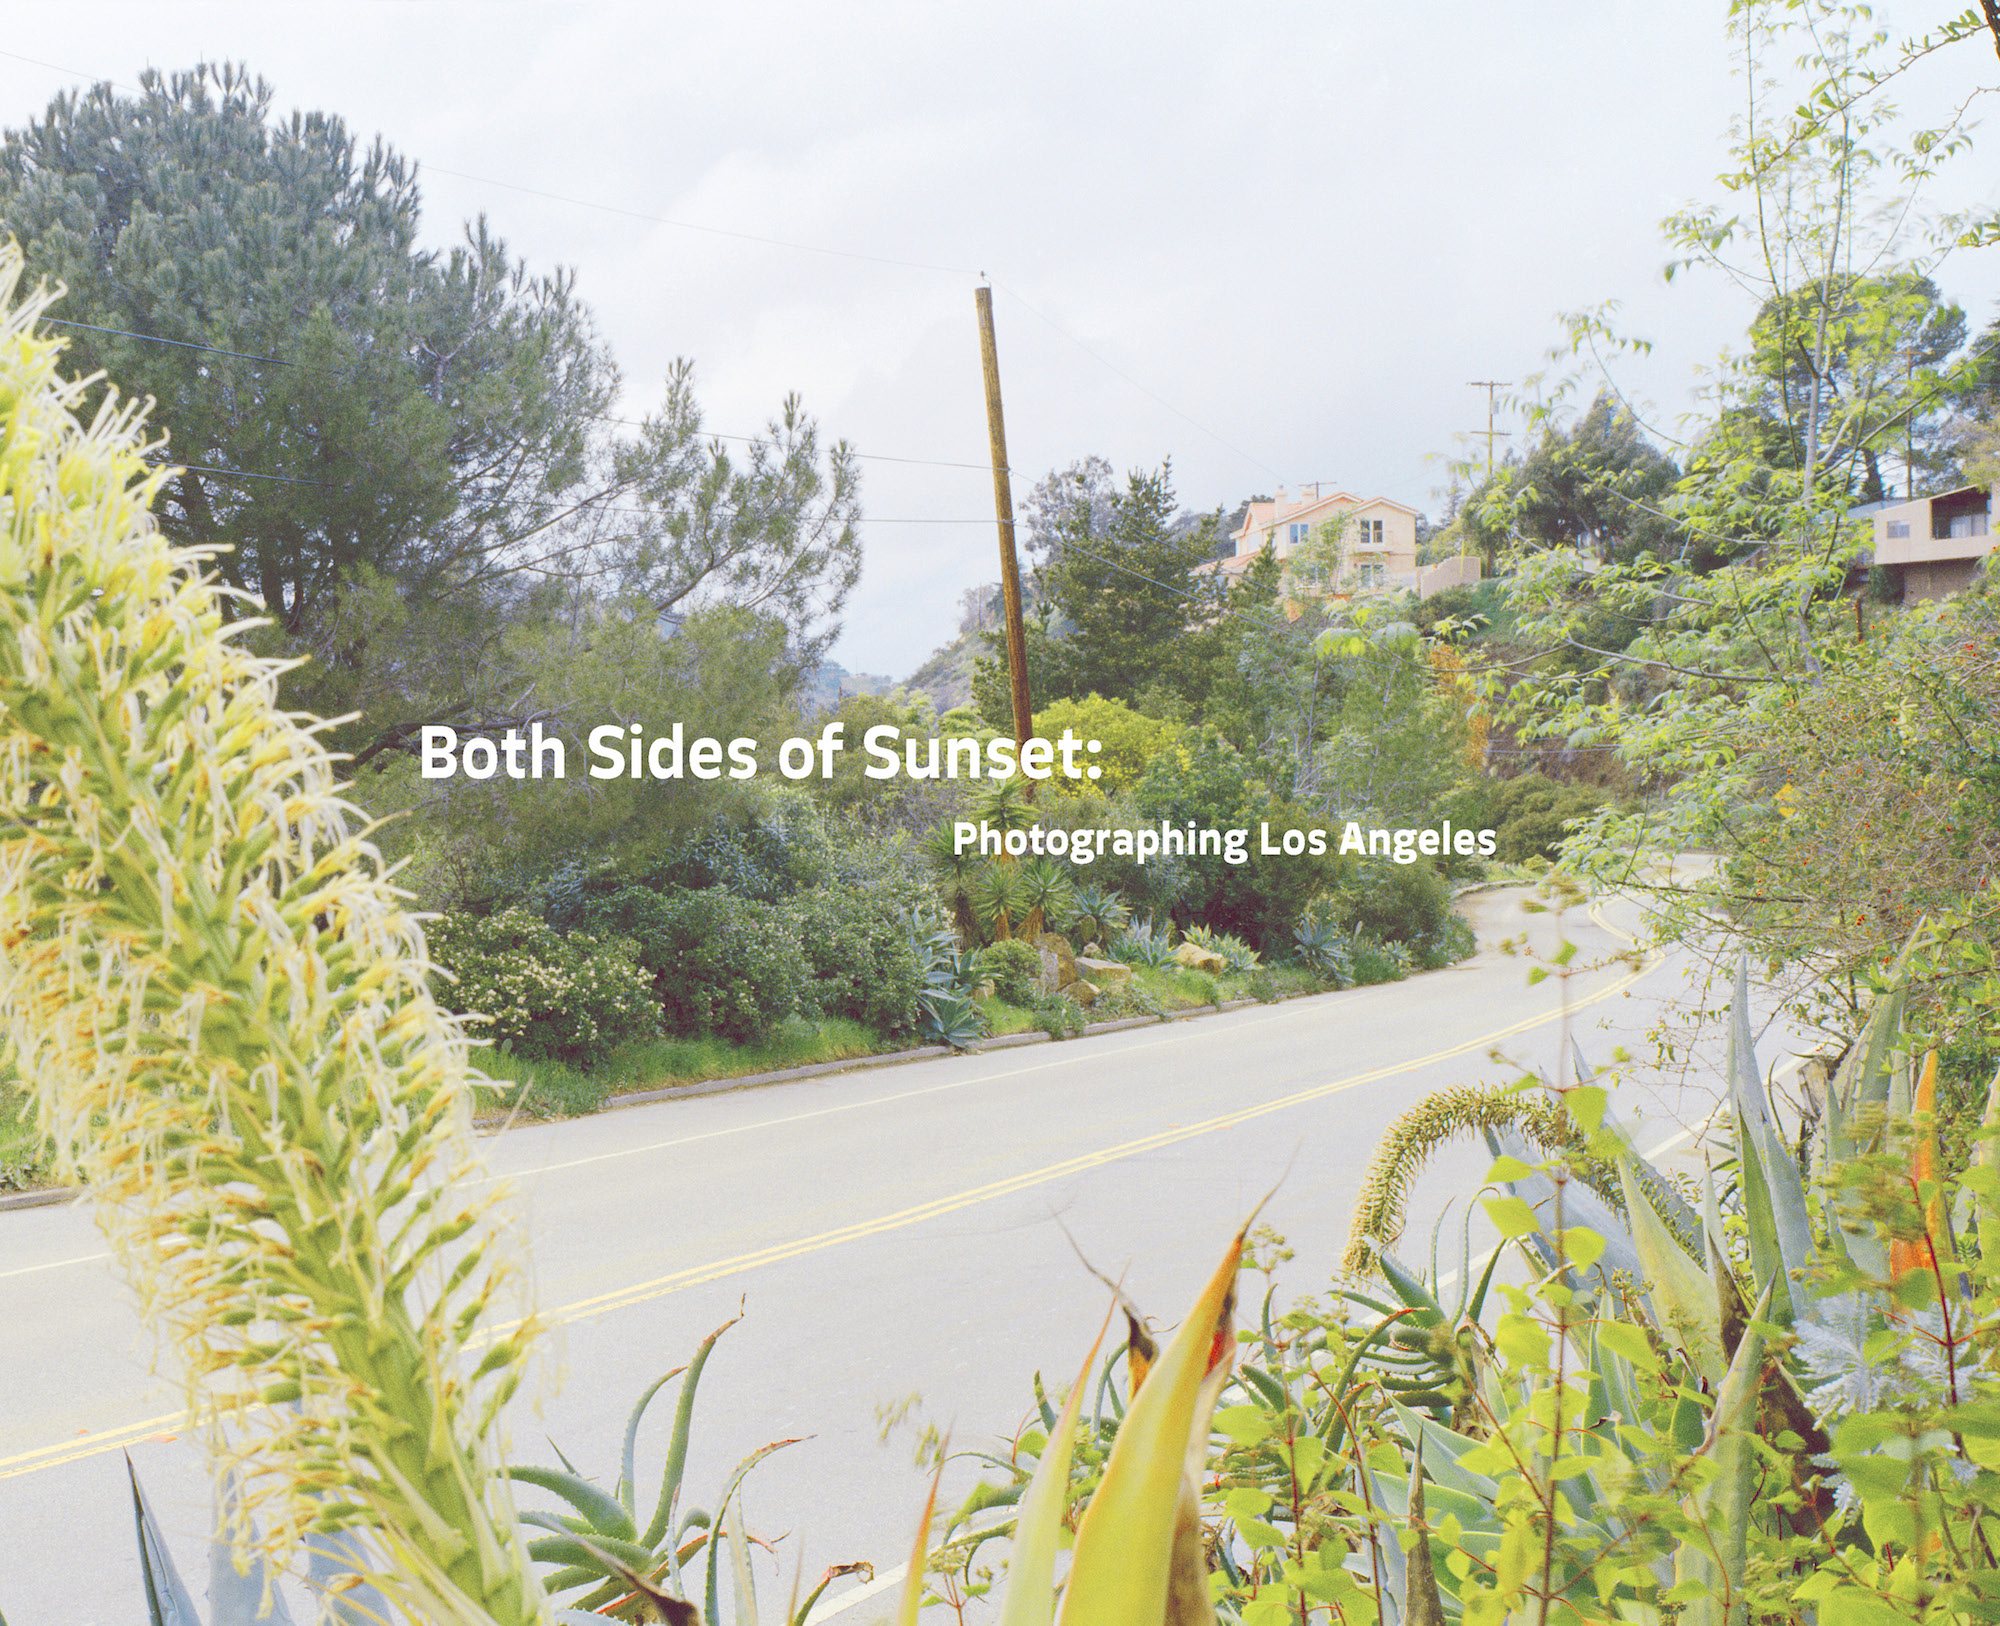 BothSidesofSunset_Cover.jpg